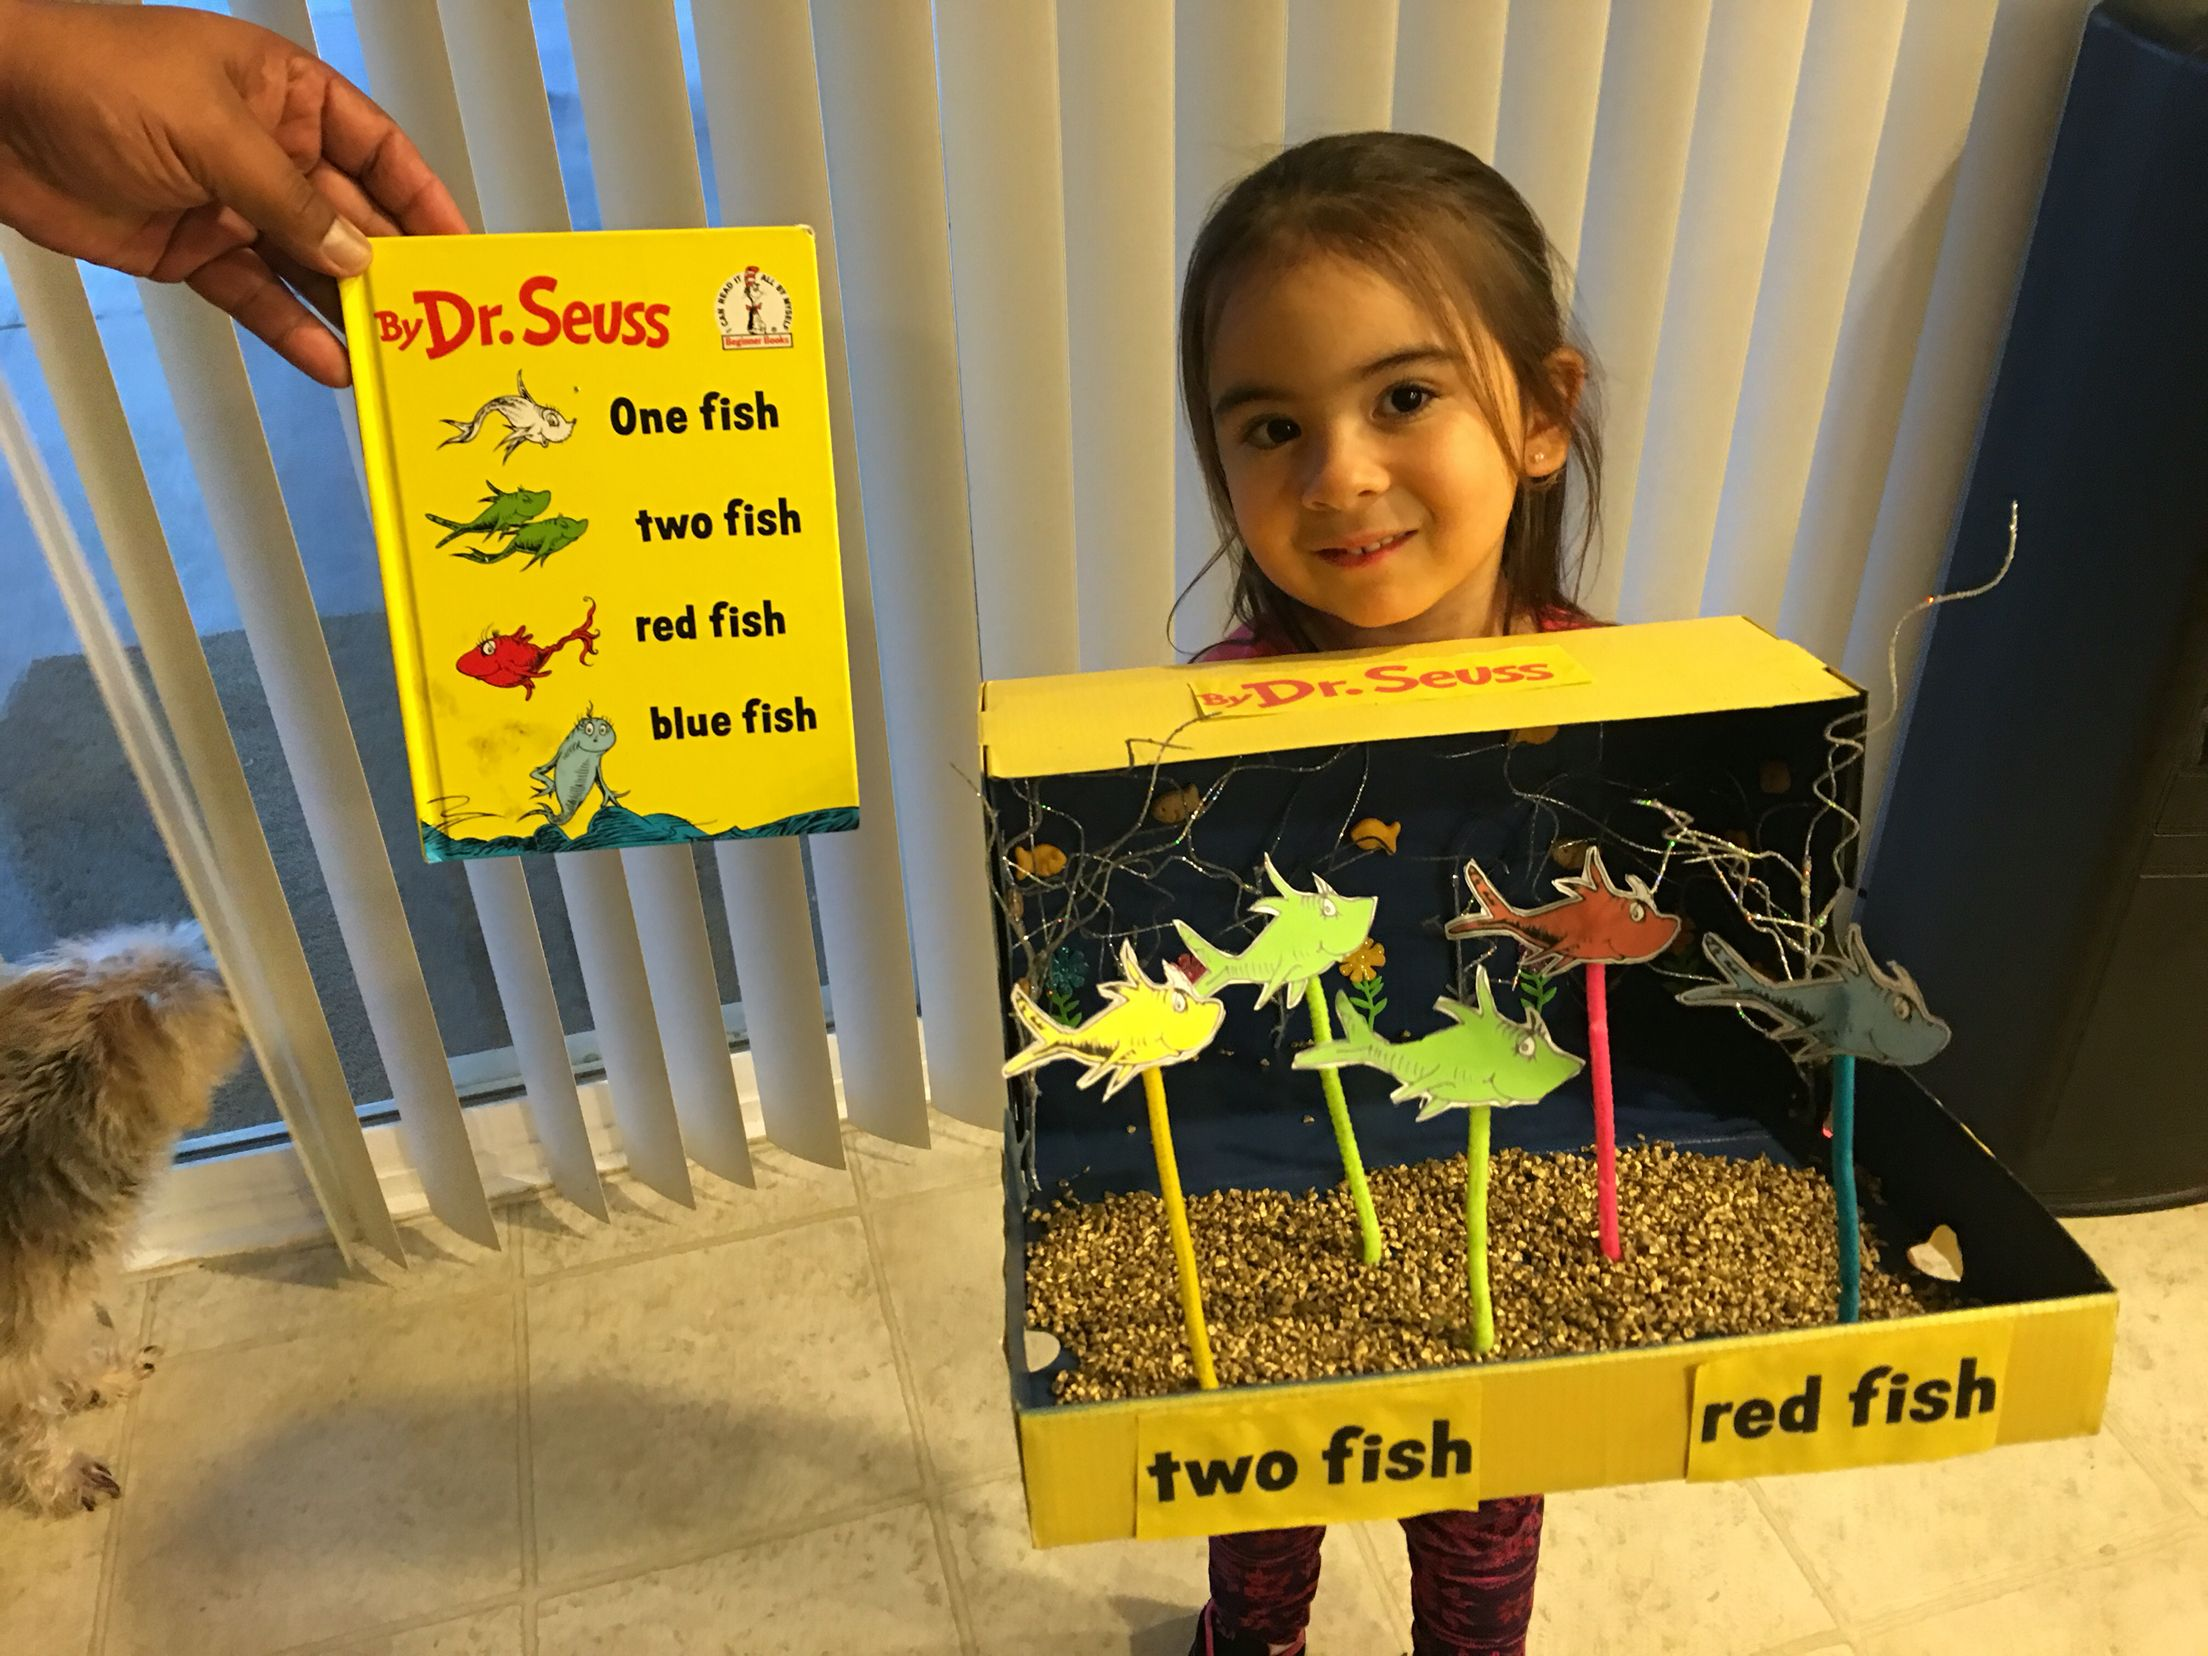 Dr Seuss One Fish Two Fish Diorama